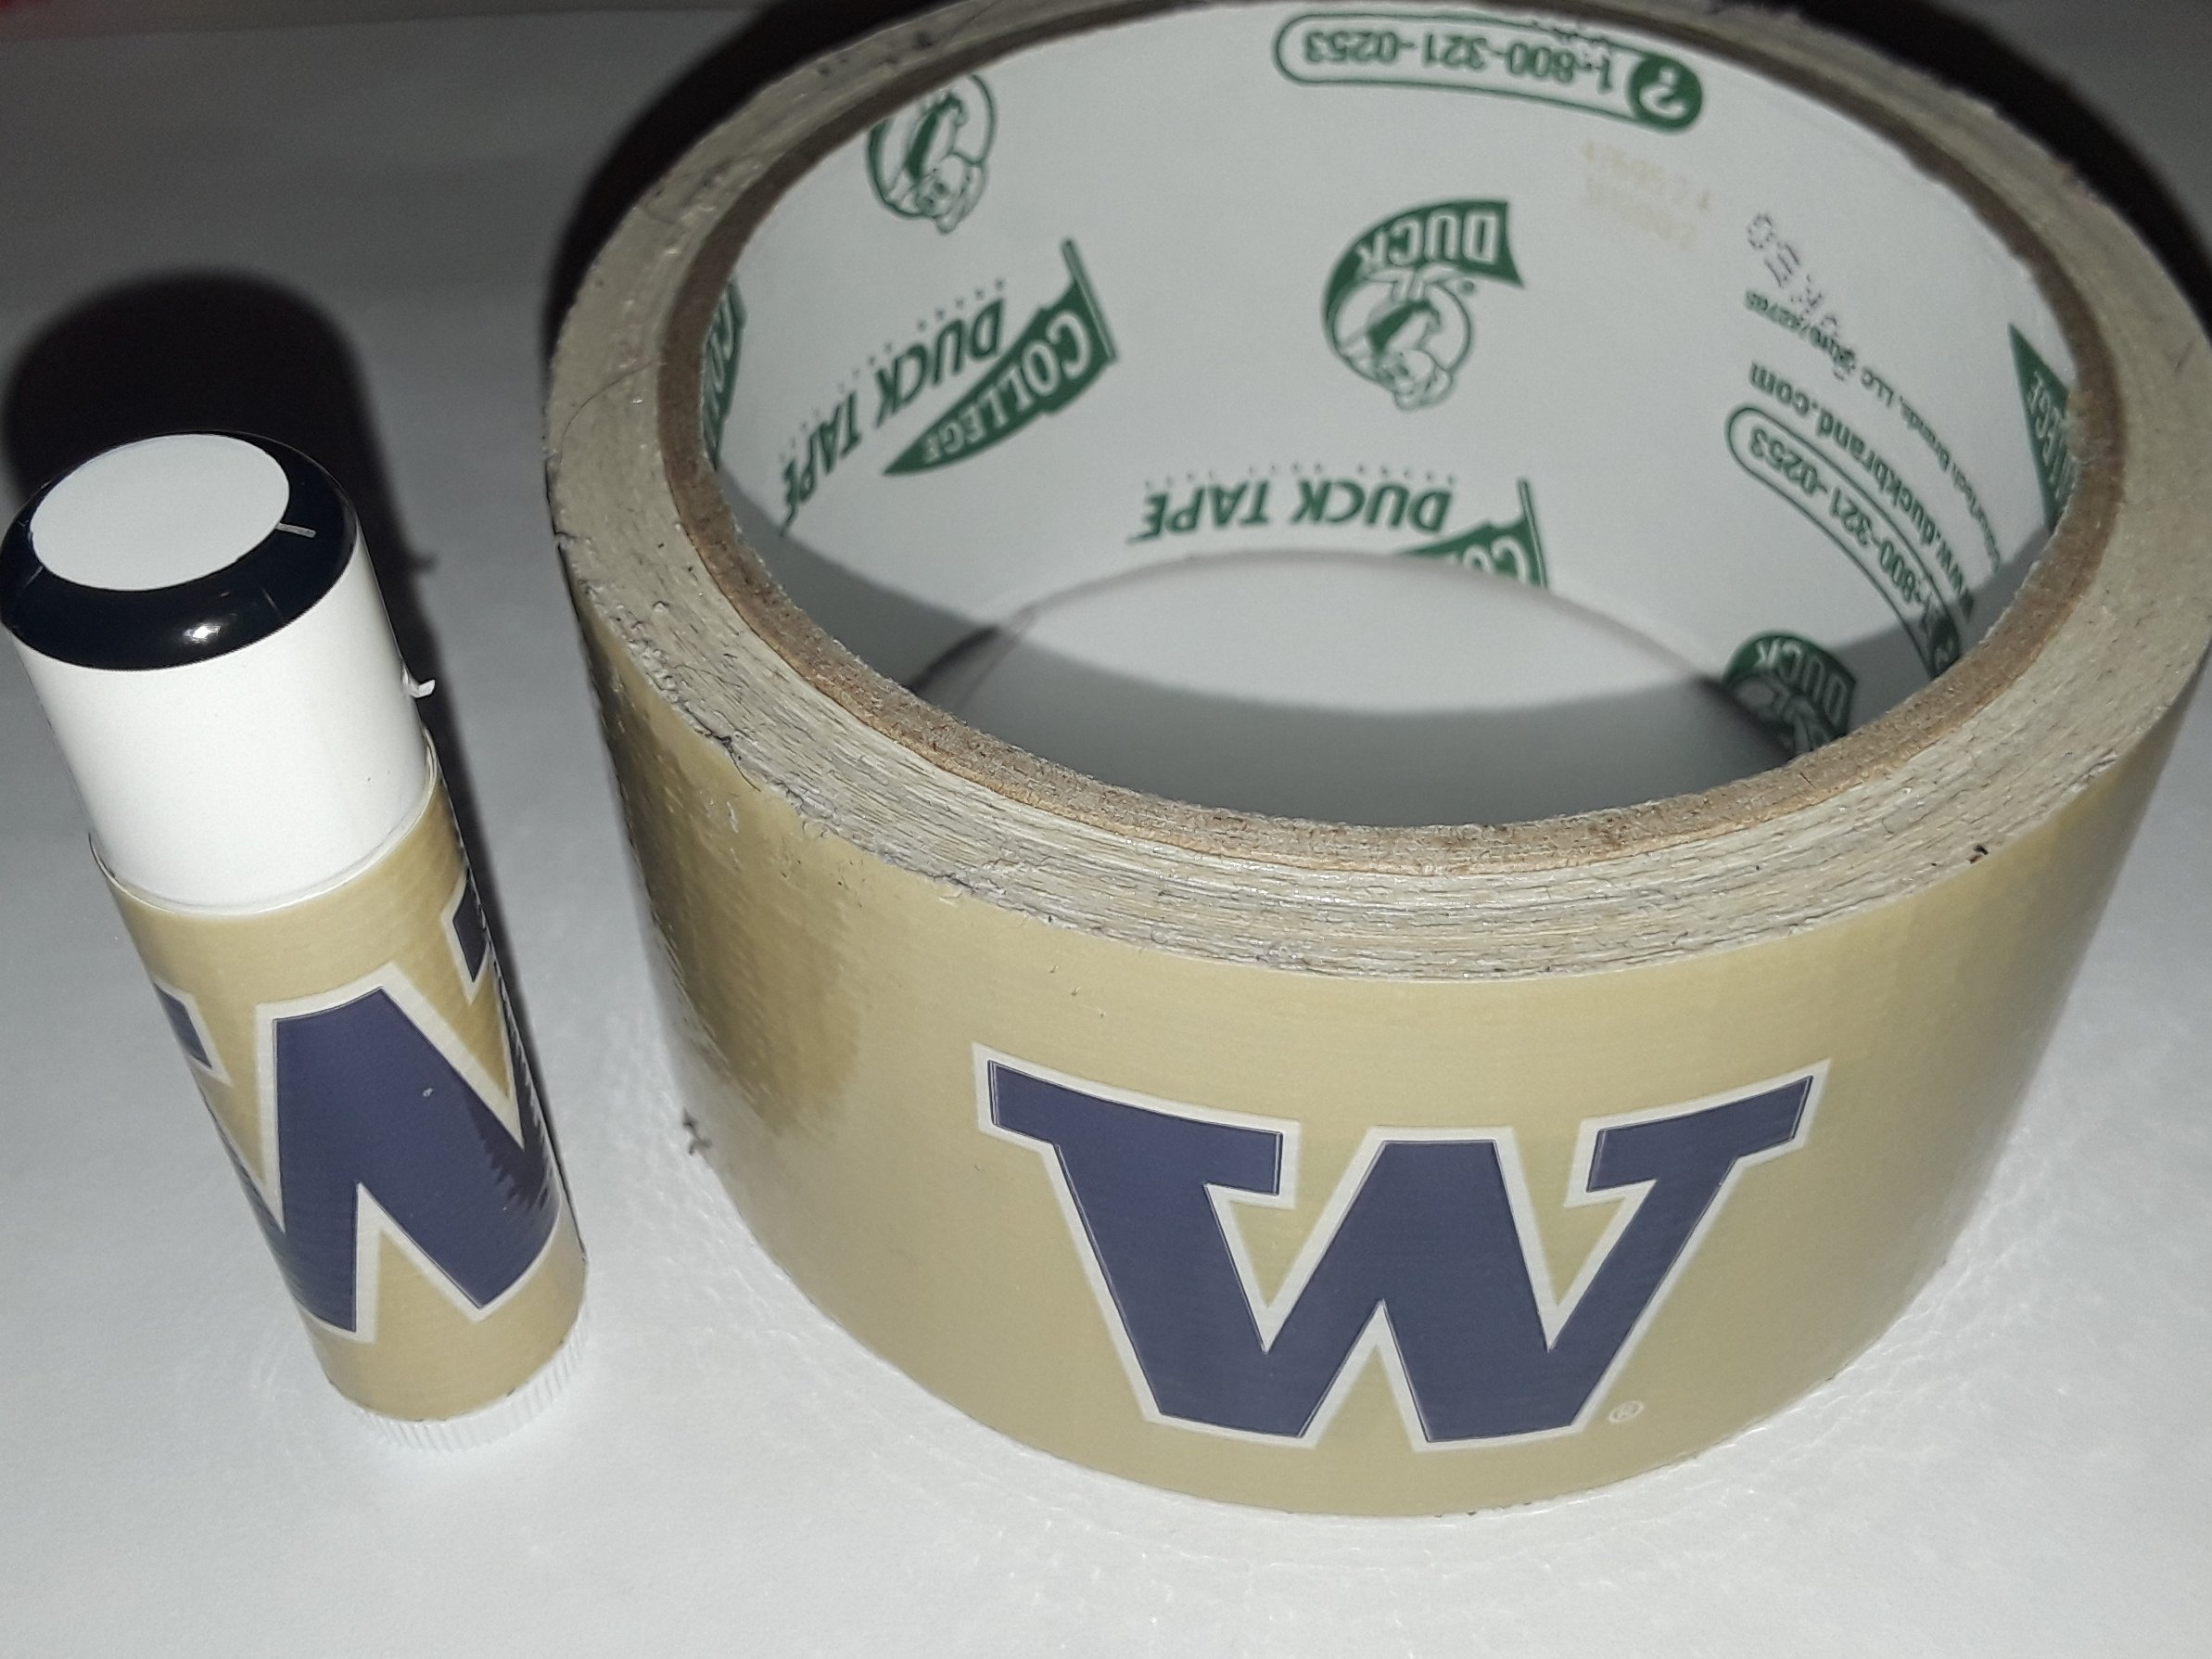 25 University of Washington Huskies NCAA Chap Stick Lip Balm twenty five pack pieces BULK